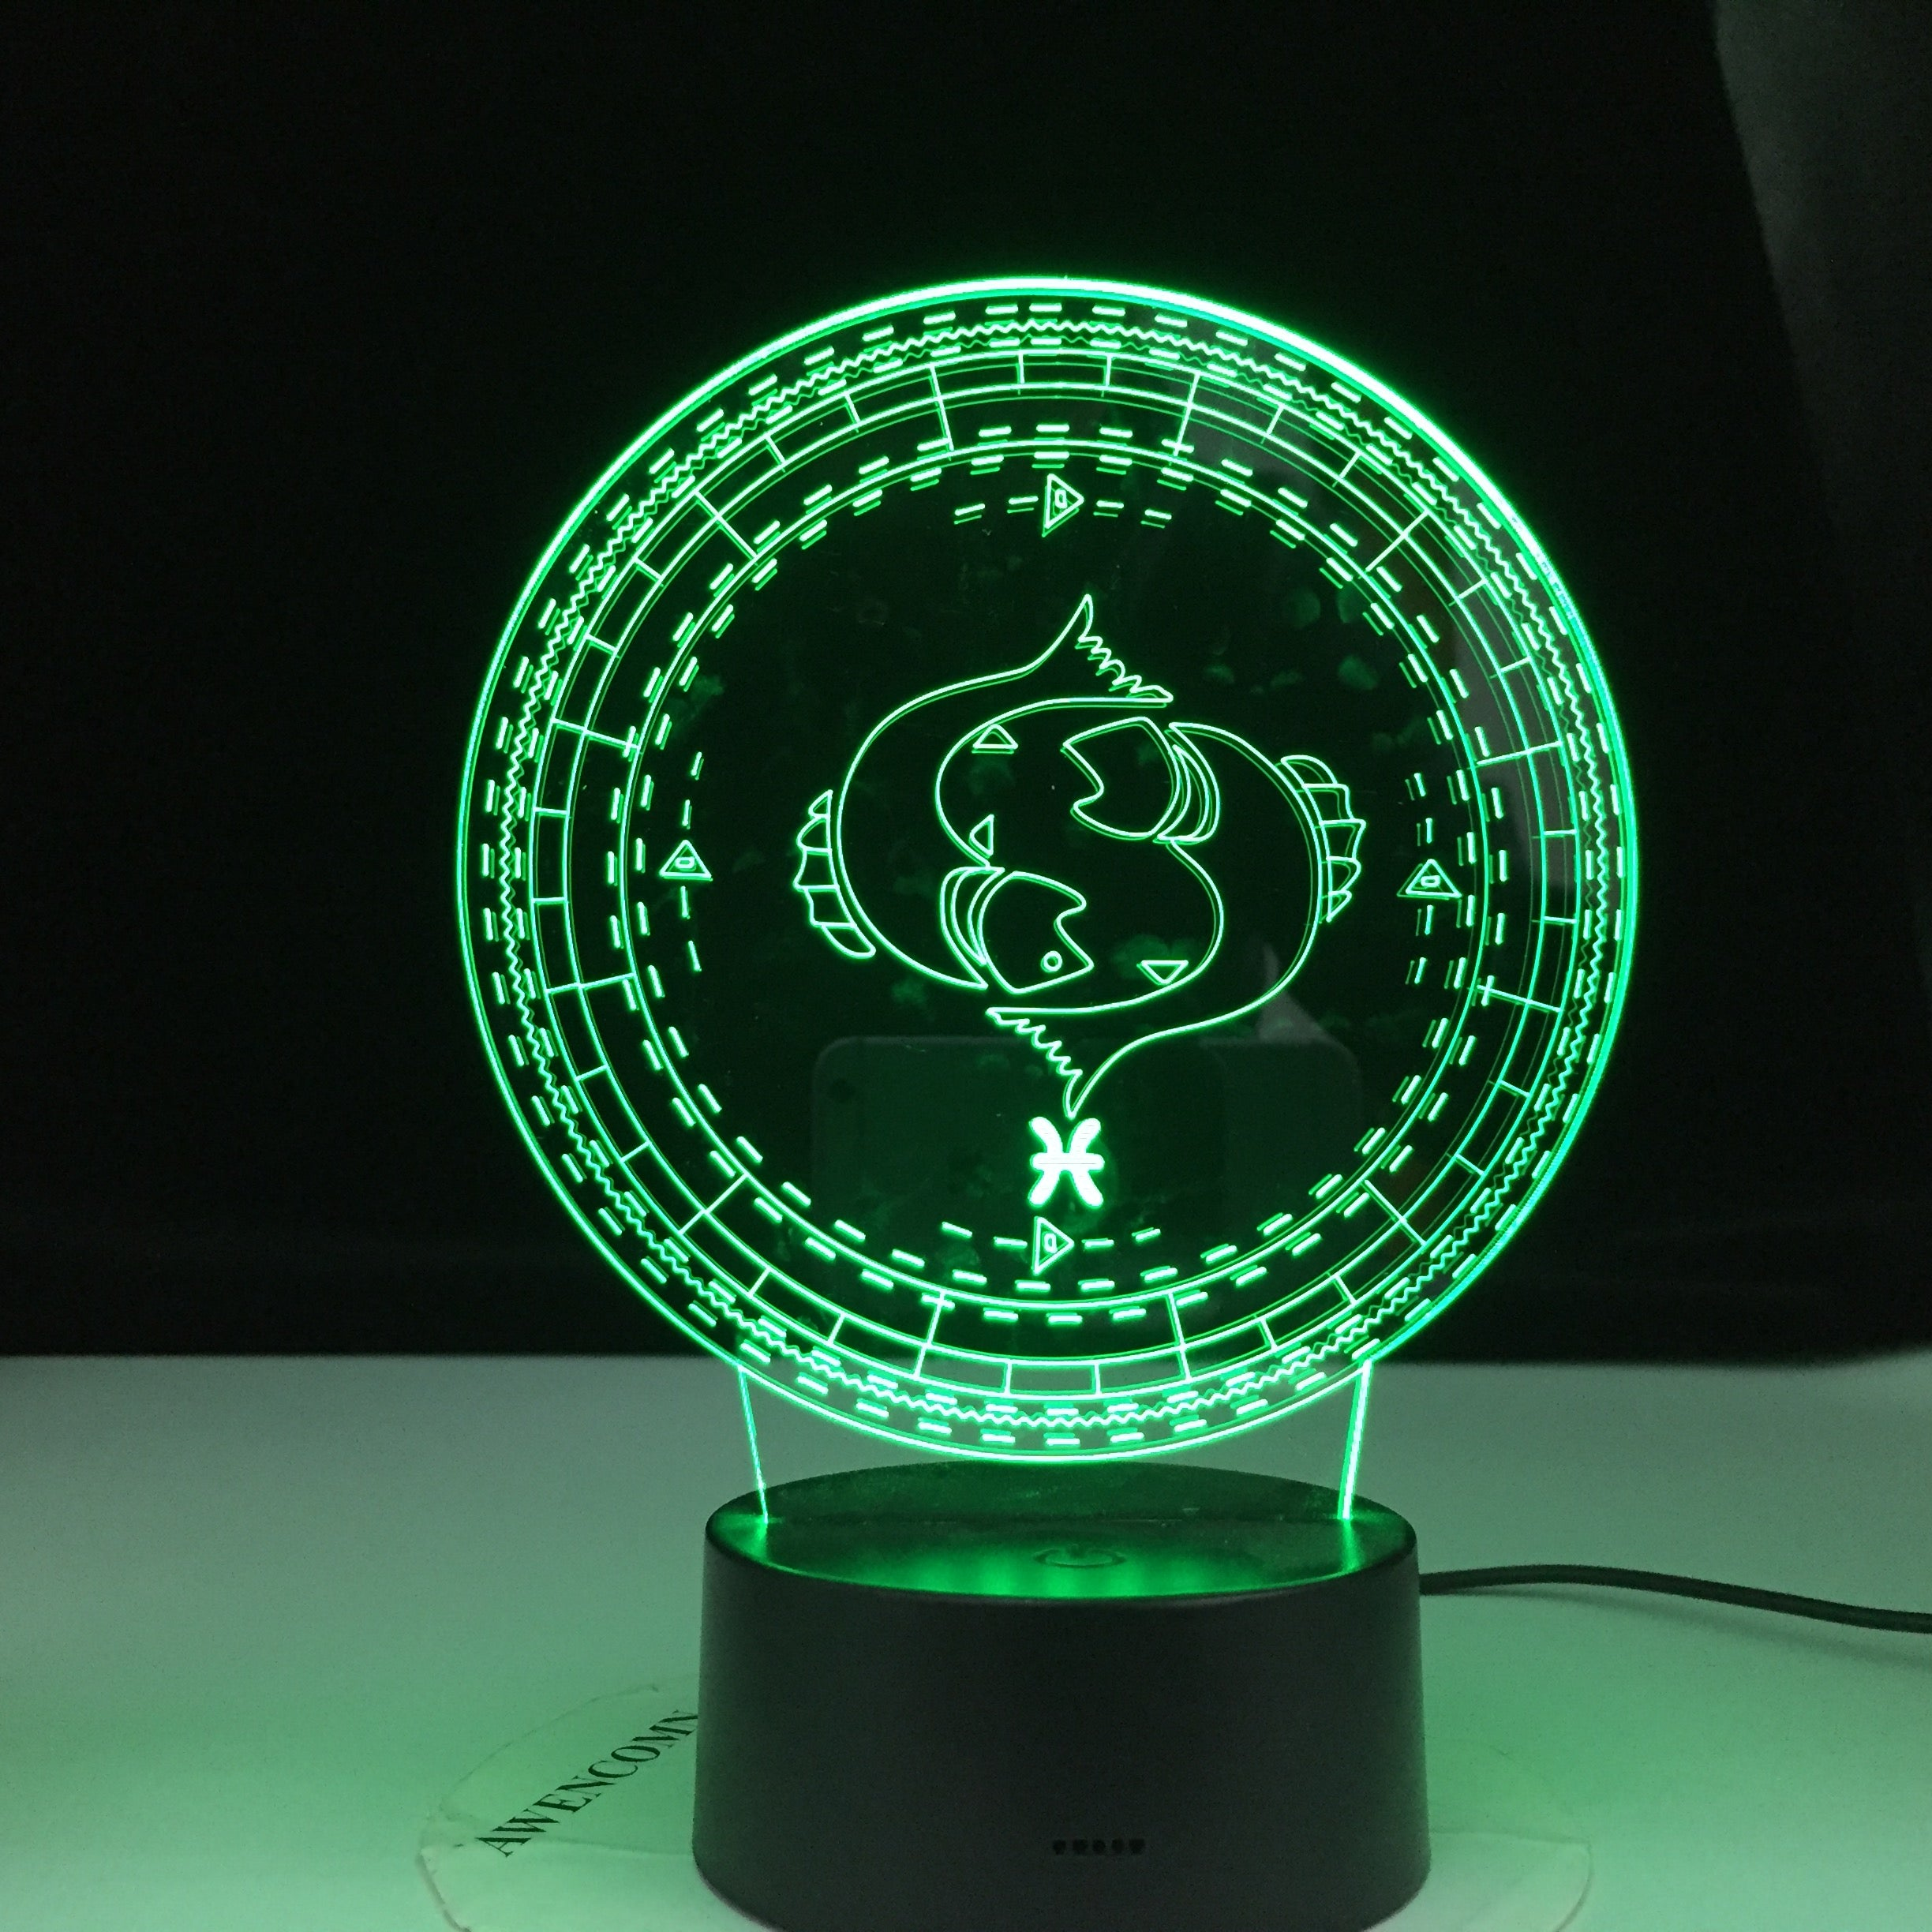 Pisces Twelve Constellation Lamp Kids Night Light Led Colorful Touch Sensor Nightlight for Home Decoration Light Birthday Gift